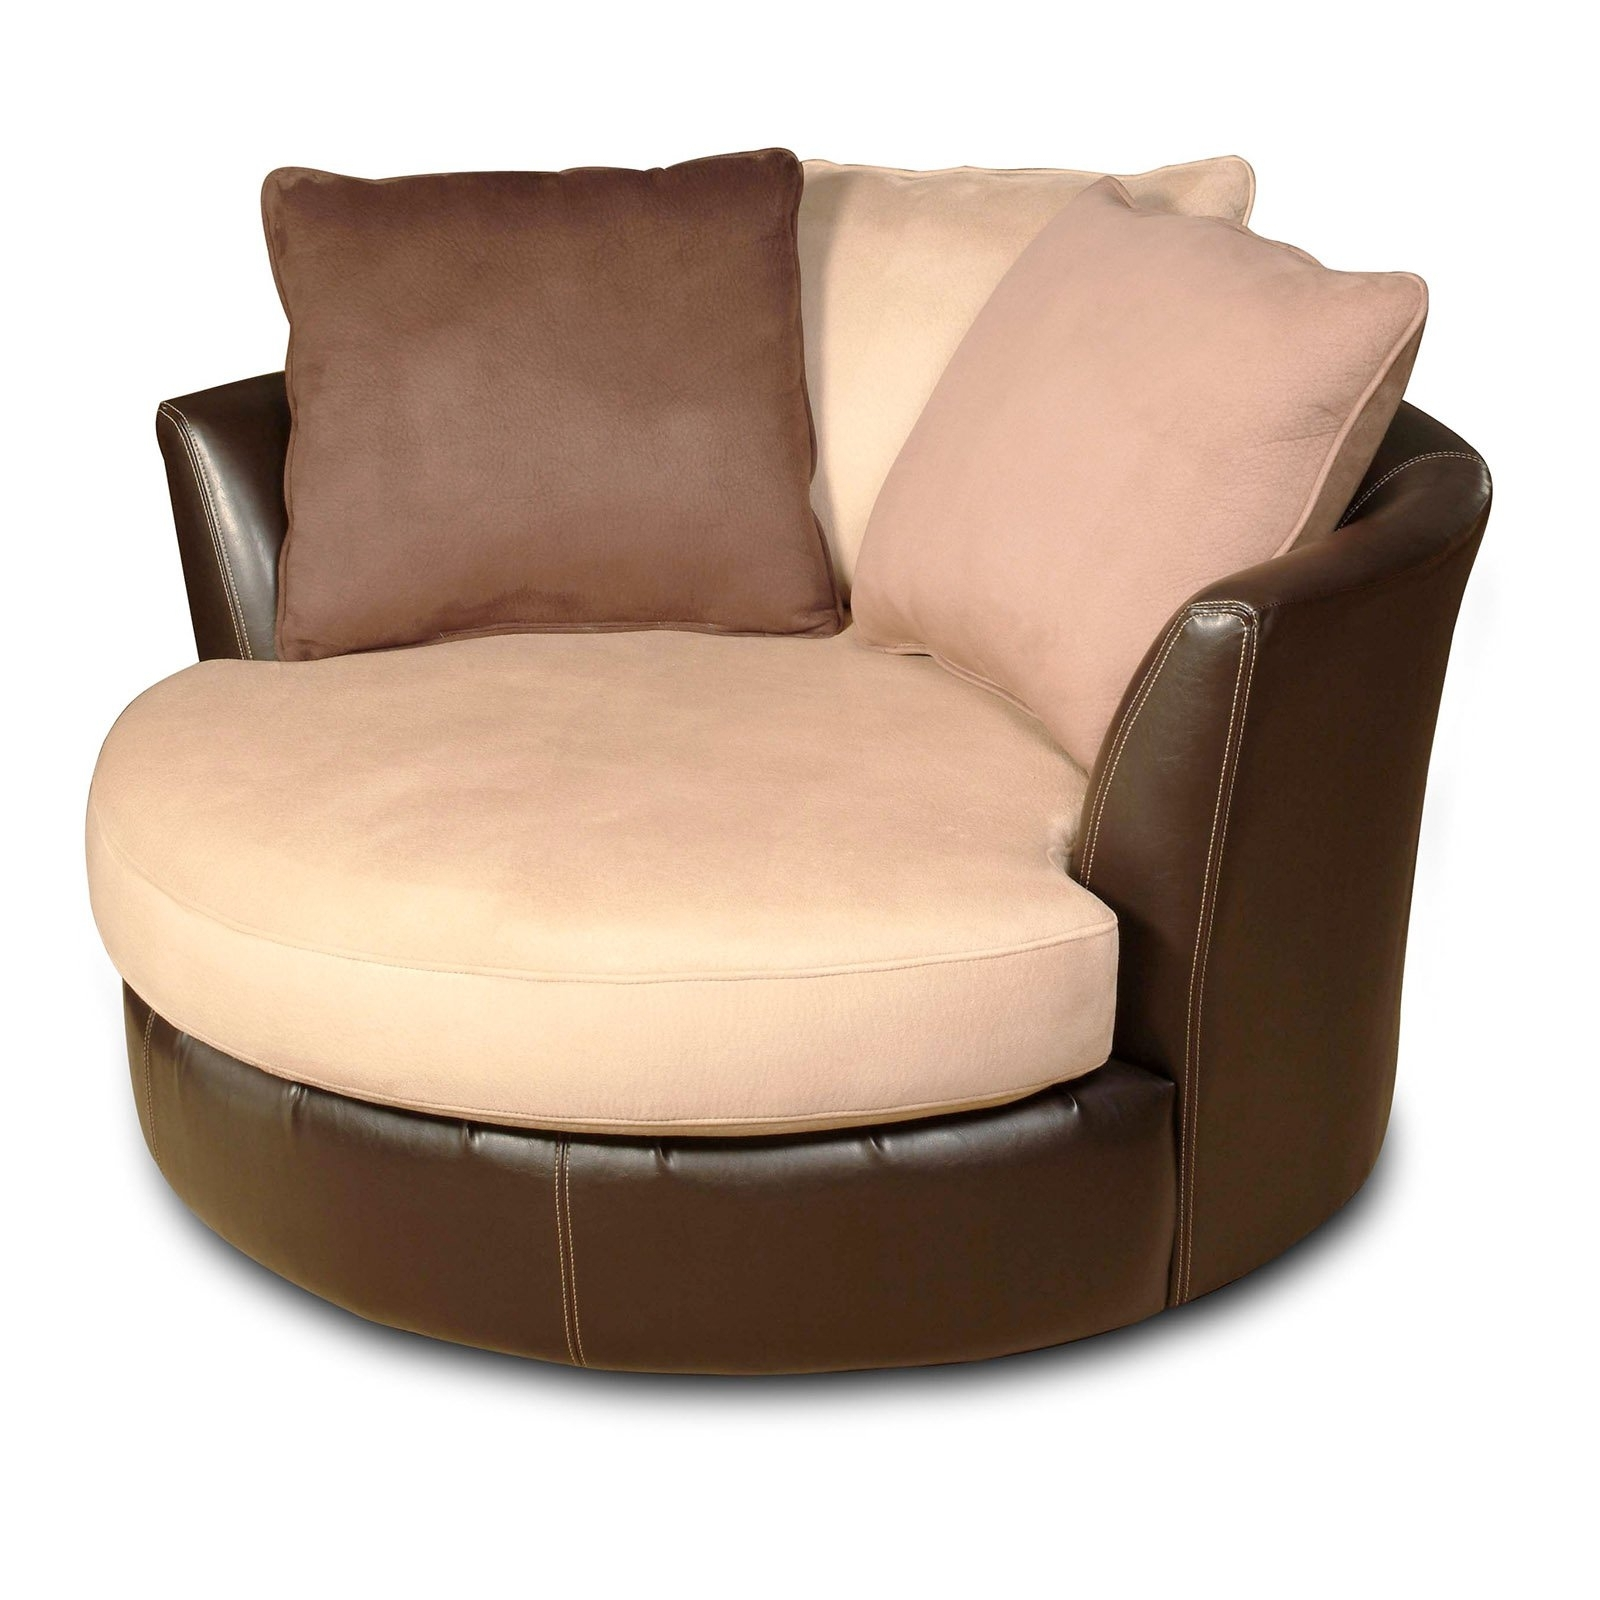 Hayneedle For Sofas With Swivel Chair (View 6 of 15)